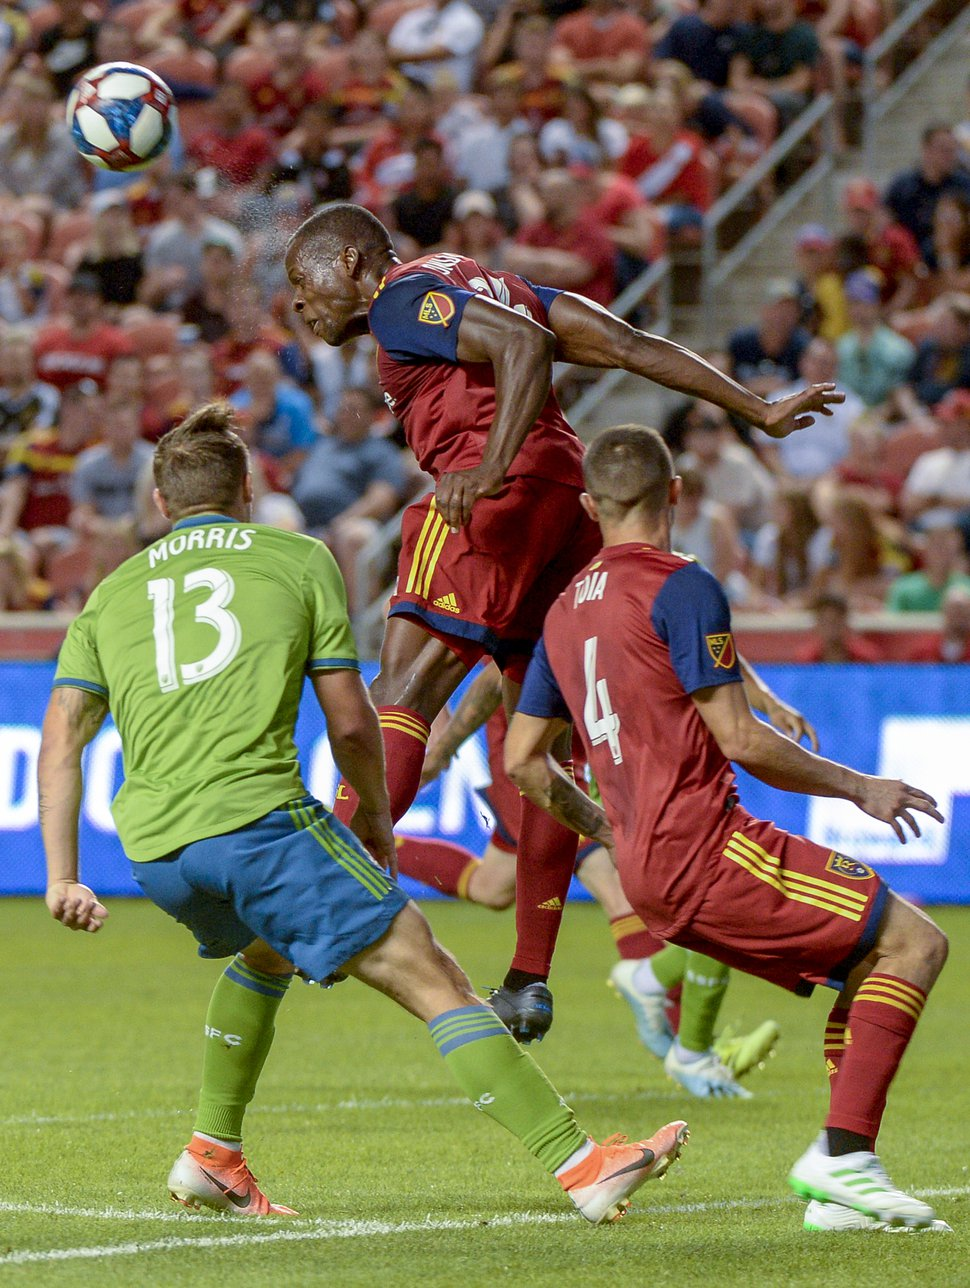 (Leah Hogsten | The Salt Lake Tribune) Real Salt Lake defender Nedum Onuoha (14) helps with a win over the Seattle Sounders in August. Onuoha believes having all 11 players commit to playing strong defense could lead to a strong playoff push for RSL.